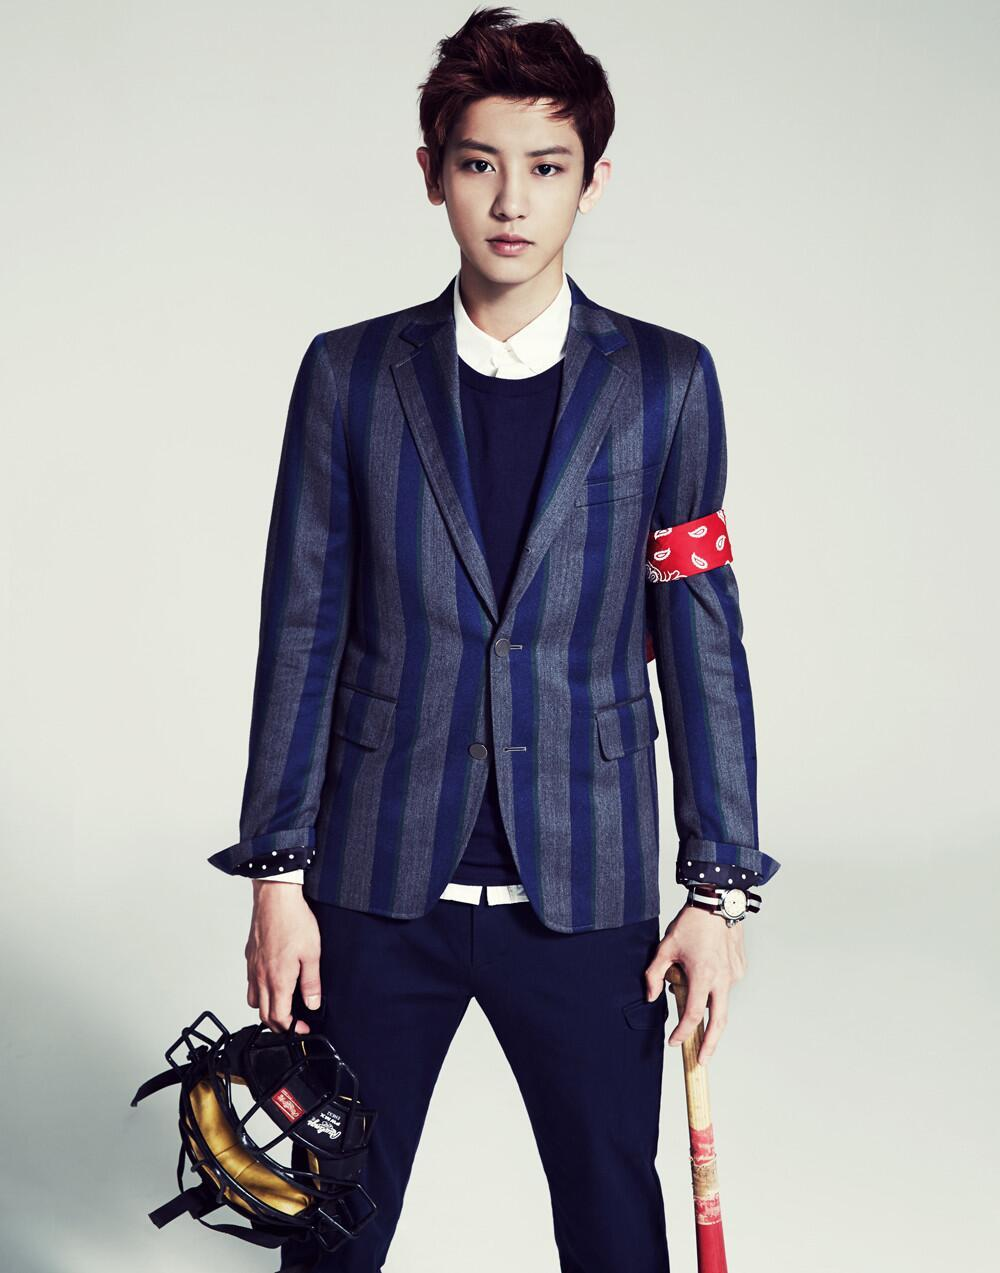 Exo chanyeol photoshoot